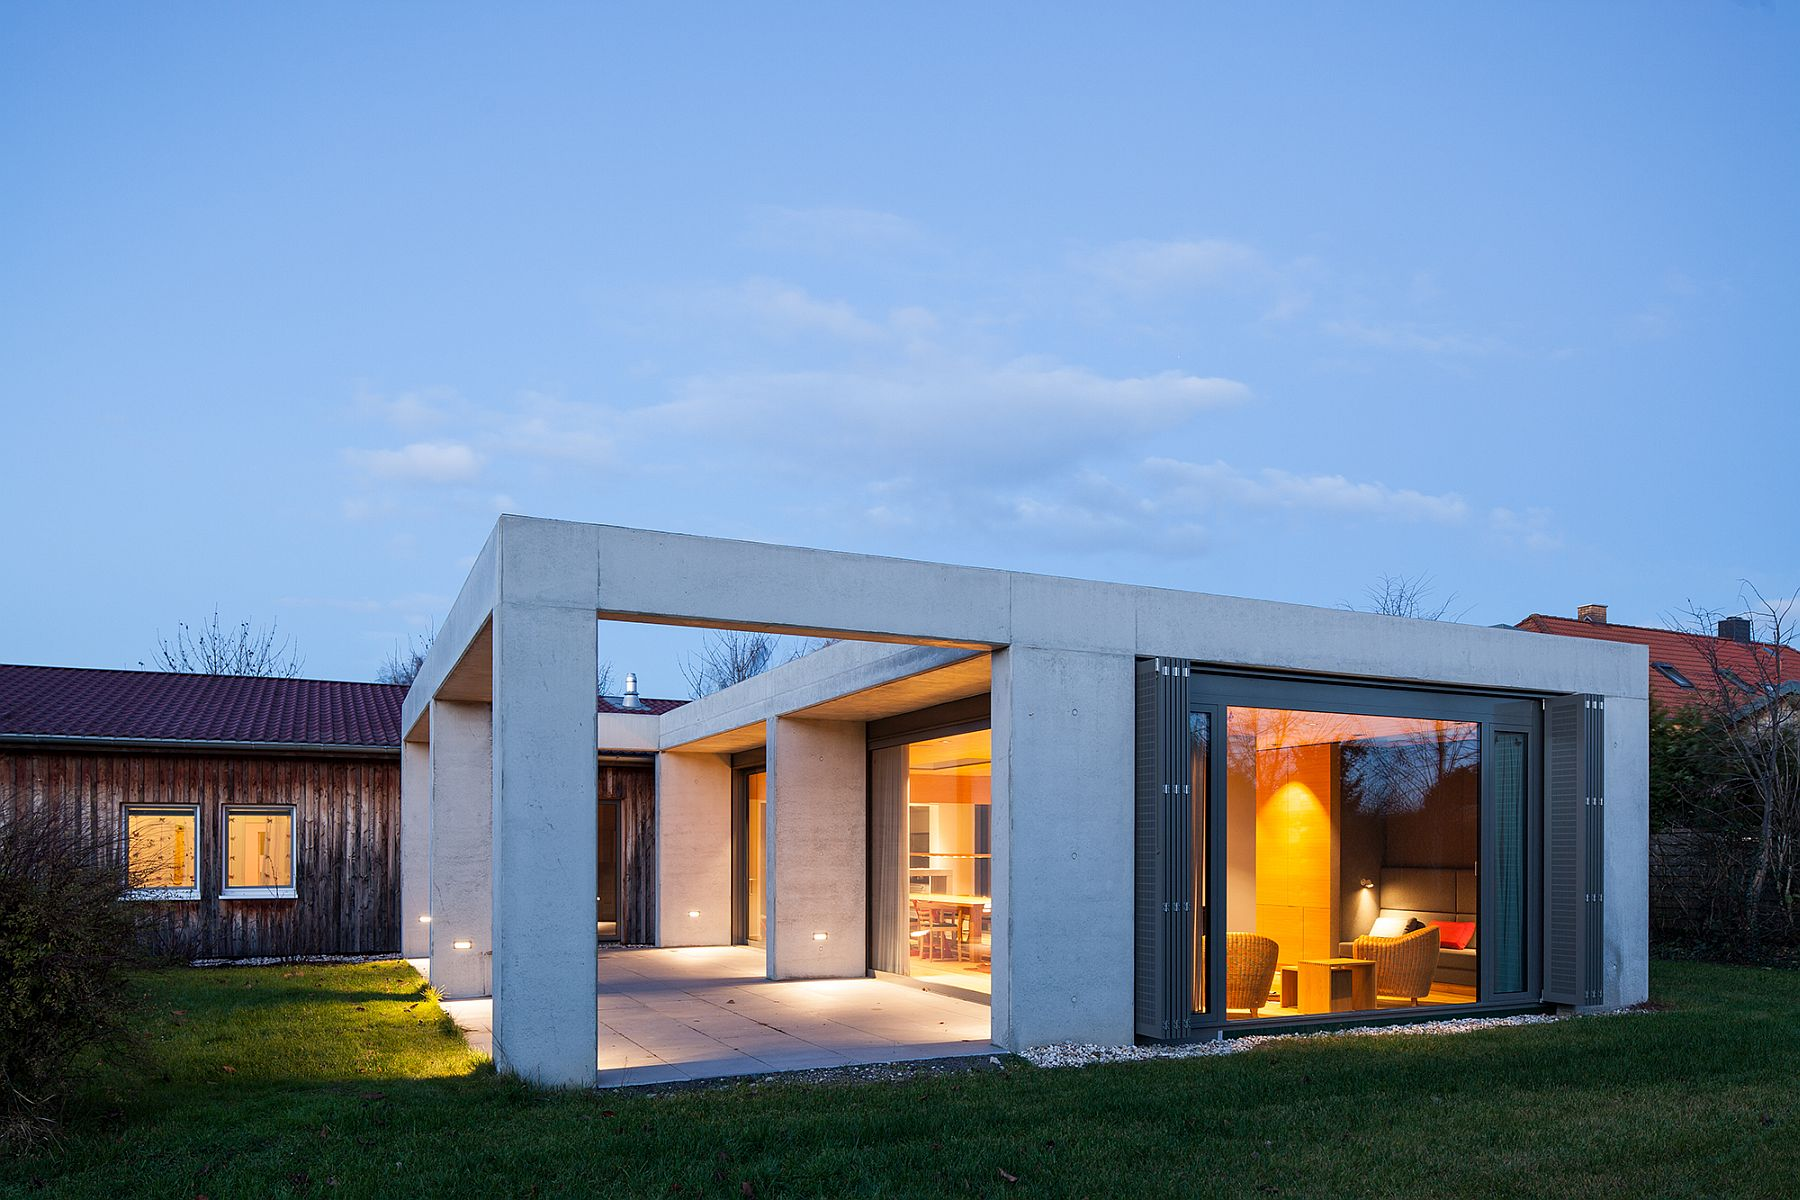 Contemporary concrete extension stands in contrast to the original timber home Glass and Concrete Pavilion Extends Timber Paneled Home in Leipzig